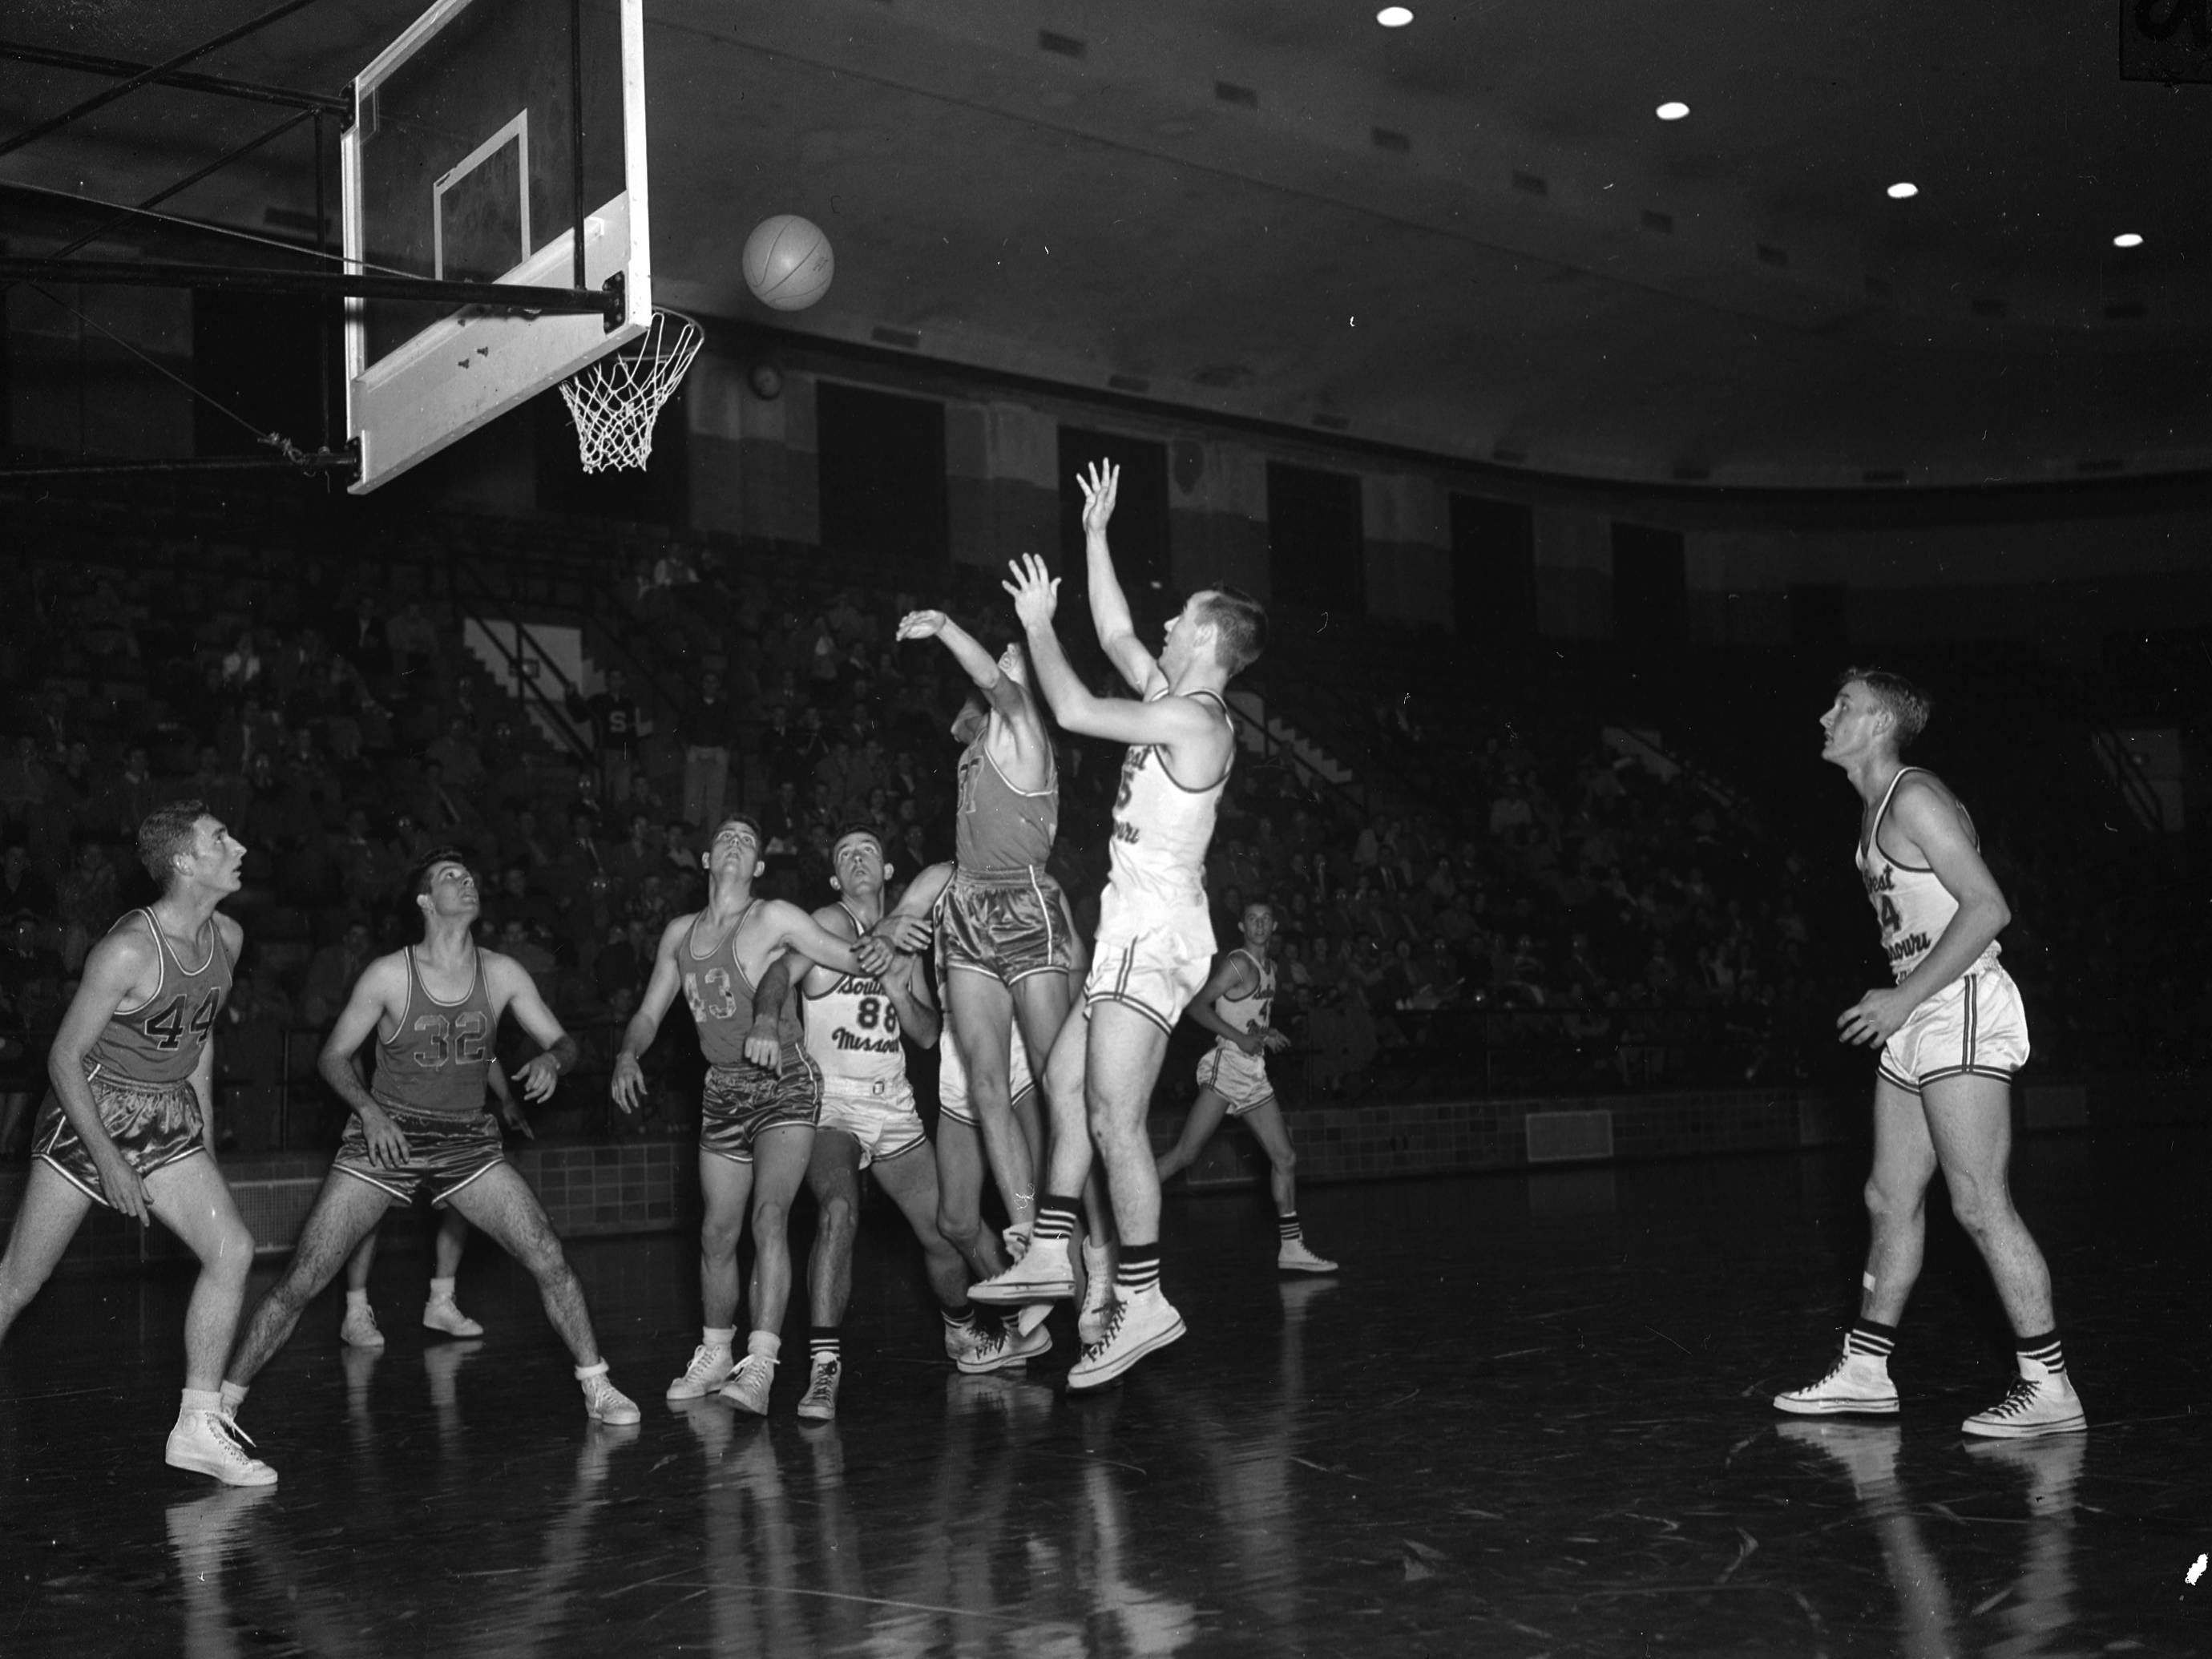 A Southwest Missouri State basketball game in December 1951.